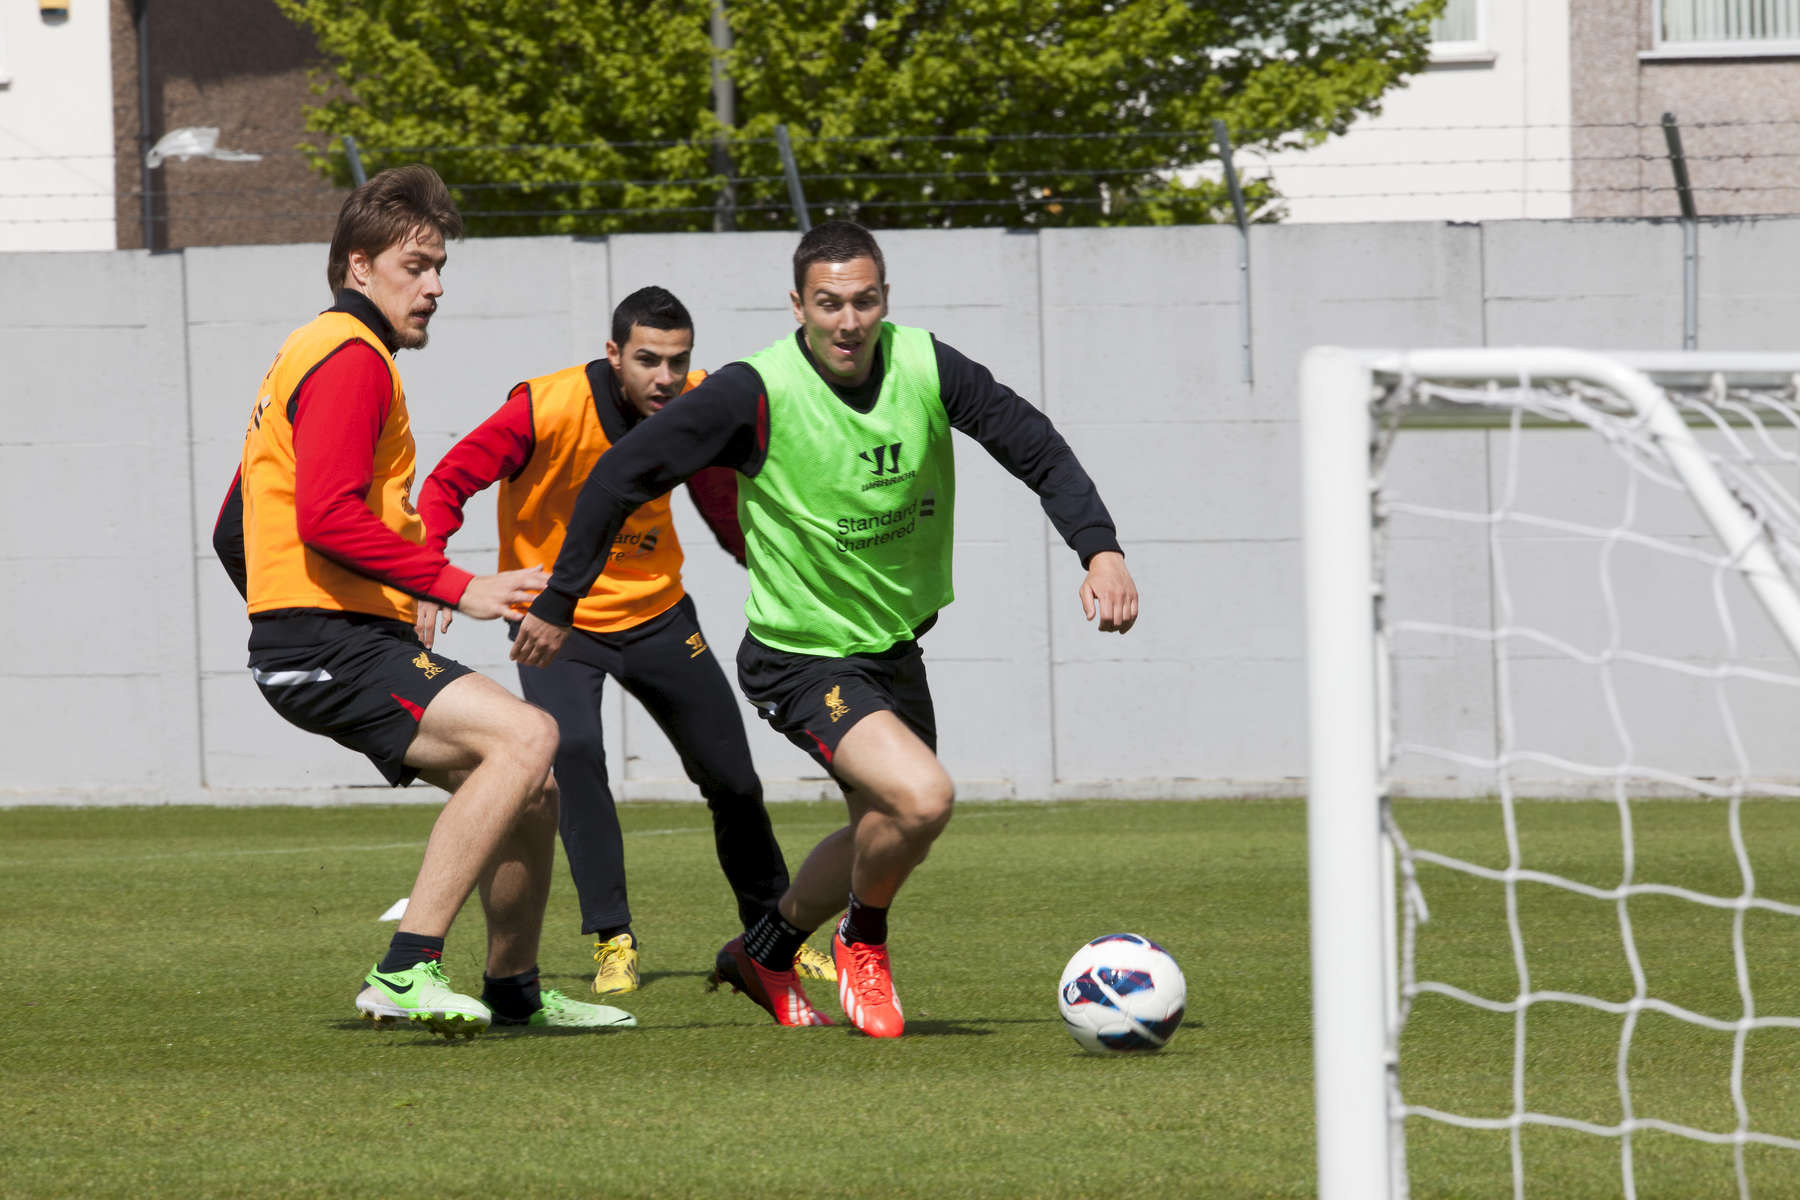 Sebastian Coates, (left) and Stuart Dwoning (right) in a training game at Melwood. Melwood is the Liverpool FC training ground, located in the West Derby area of Liverpool. It is seperate from the Liverpool Academy, which is based in Kirkby.Melwood was redeveloped in the early 2000′s with large input from then-manager Gerard Houllier and now features some of the best facilities in Europe. It has been the club's training ground since the fifties and was previously transformed into a top class facility by Bill Shankly.Facilities include sythetic pitches, rehabilitation rooms, press and meeting rooms, gymnasium, swimming pool, restaurant and recreational facilities.